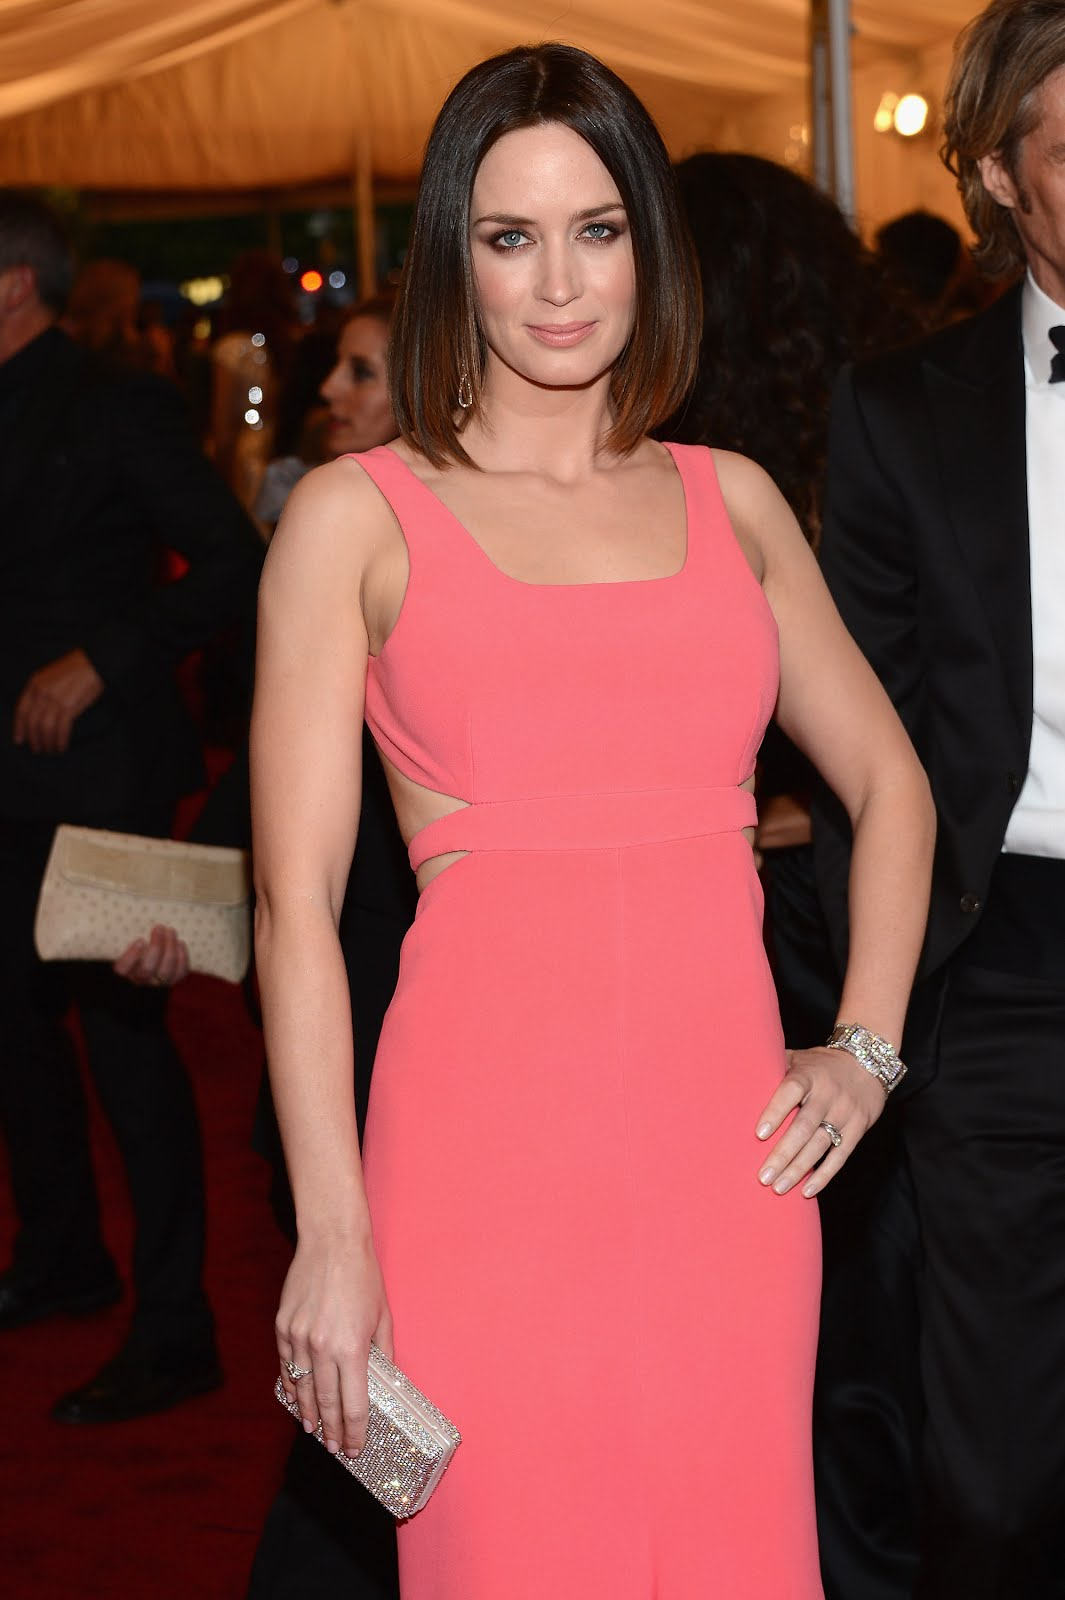 Celebrities Spy: Emily Blunt Wearing A Sexy Pink Gown- 9 Pics